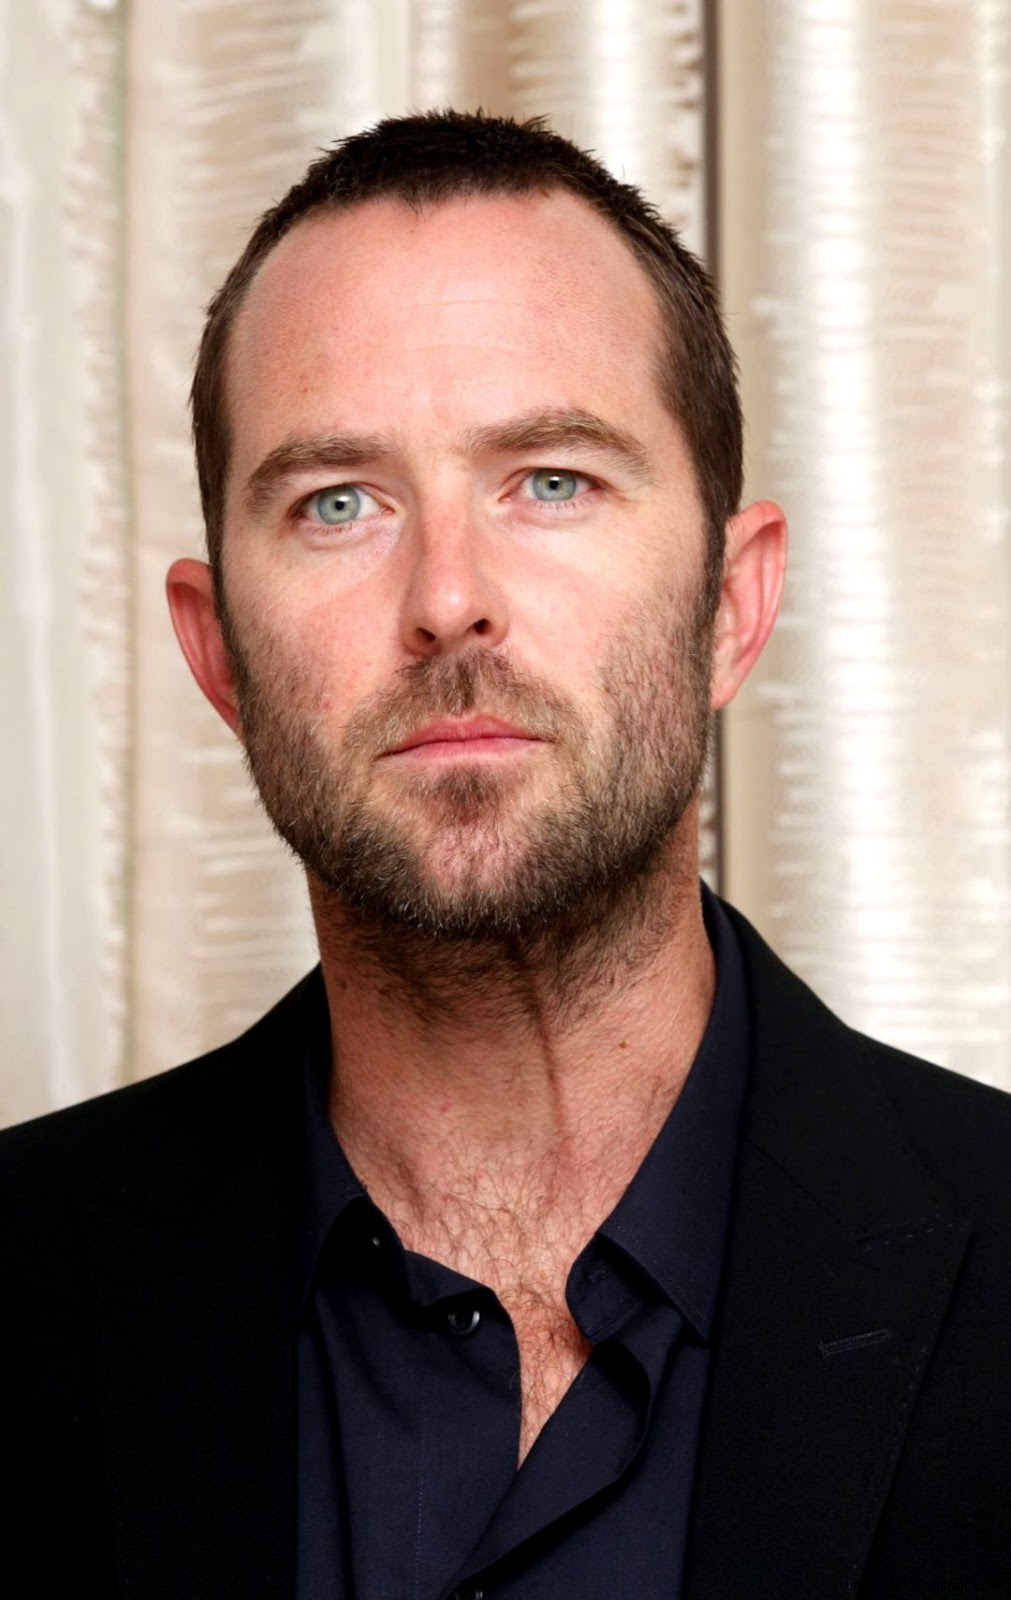 SULLIVAN STAPLETON – Blindspot Press Conference Portraits by Munawar